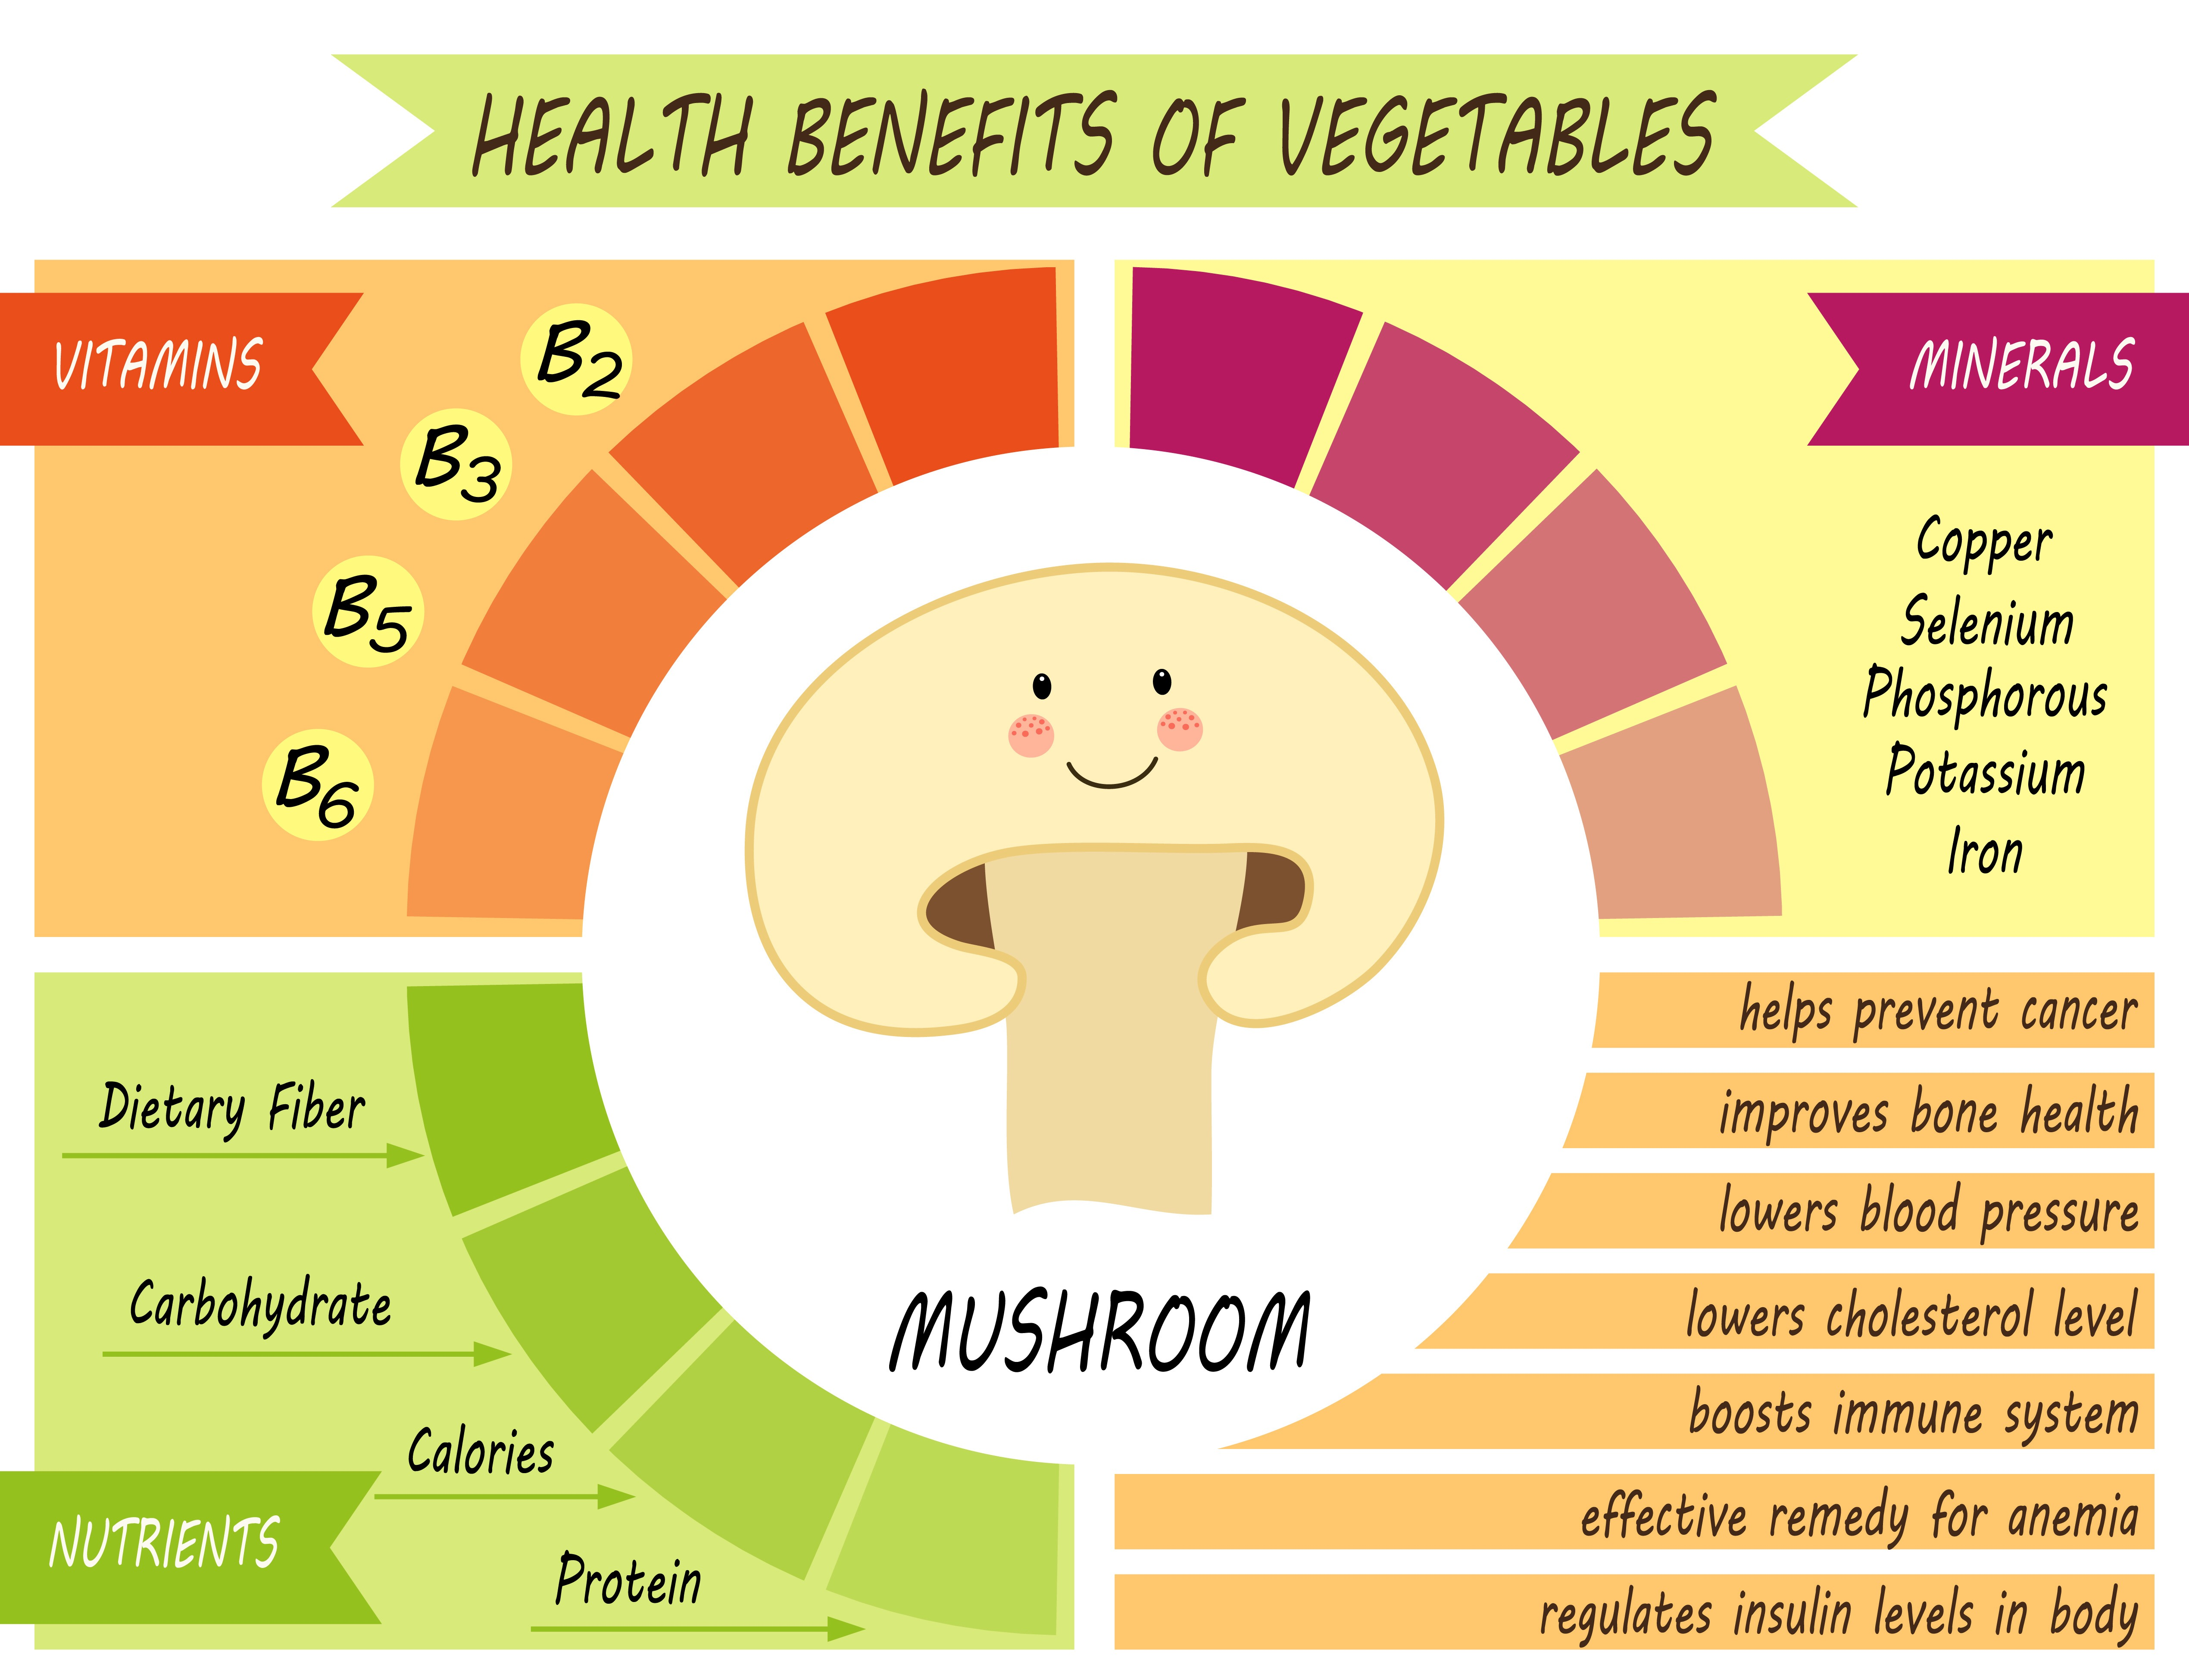 Health Benefits Of Mushrooms Ihearts143quotes